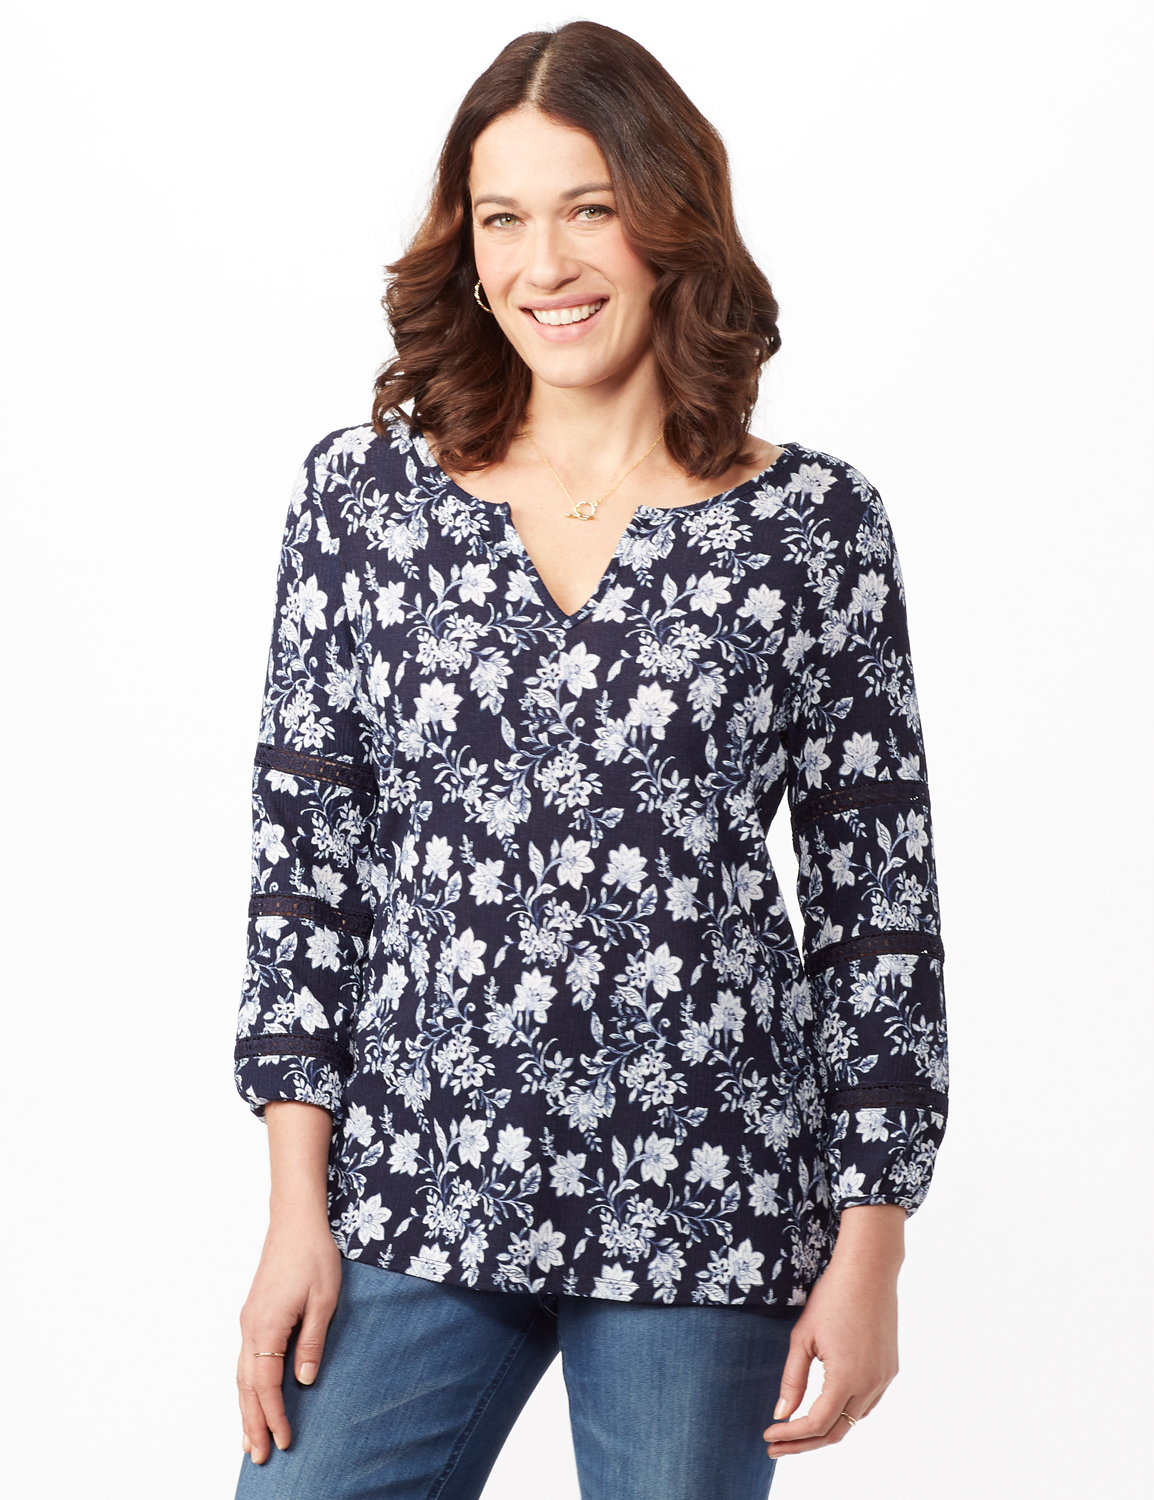 Long Sleeve Floral Knit Top with Lace Inset -Blue - Front